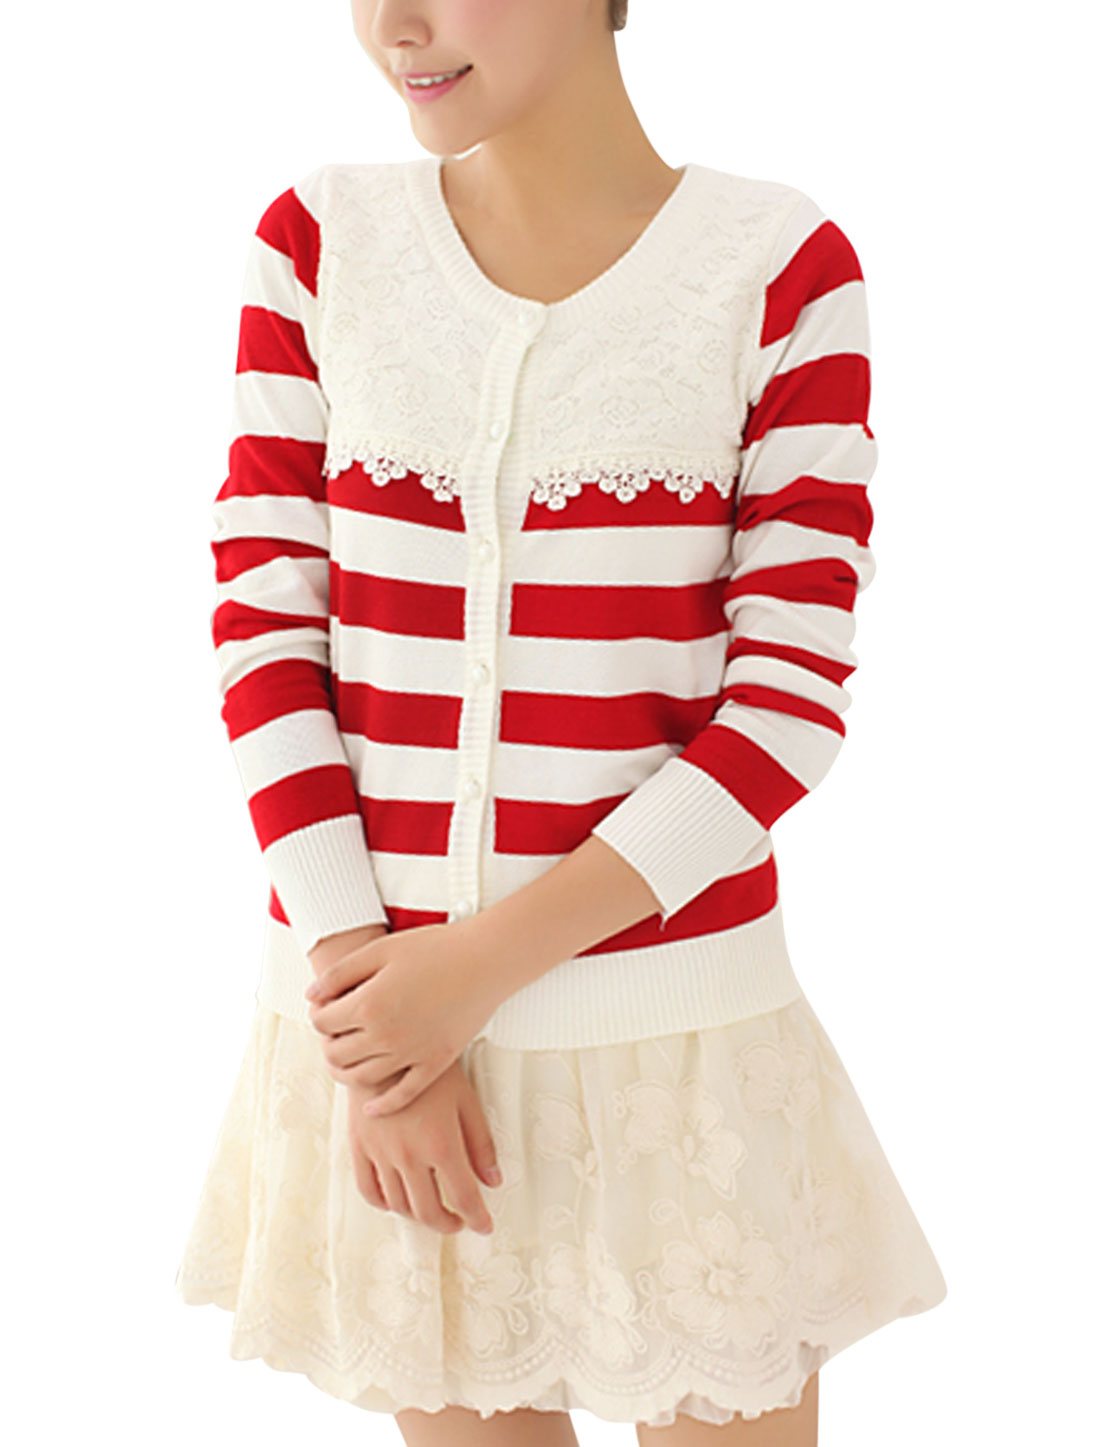 Slim Fit Round Neck Stripes Pattern Casual Knit Shirt for Lady Red White S